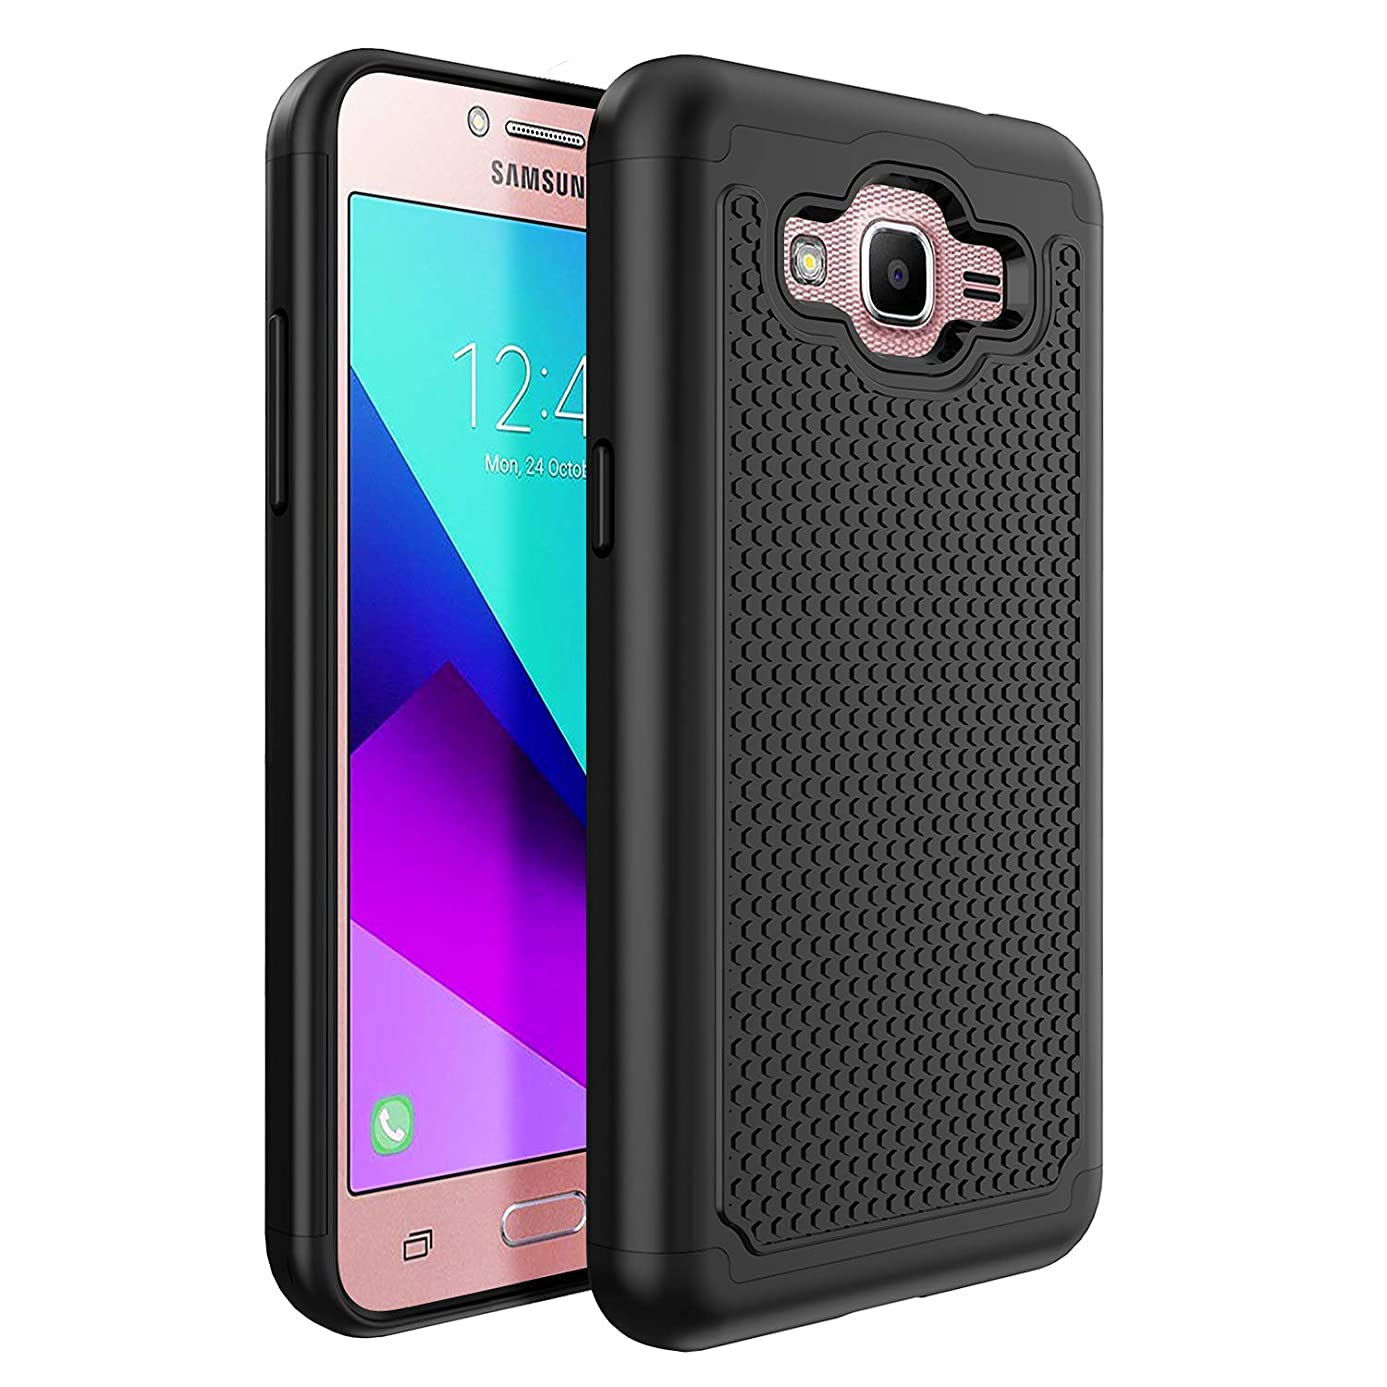 CSCOOL-Galaxy J2 Prime Case, Galaxy Grand Prime Plus Case [Shock-Absorption&Built in TPU&Camera Protection] Hybrid Dual Layer Rugged Armor Shockproof Protective Phone Case-Black